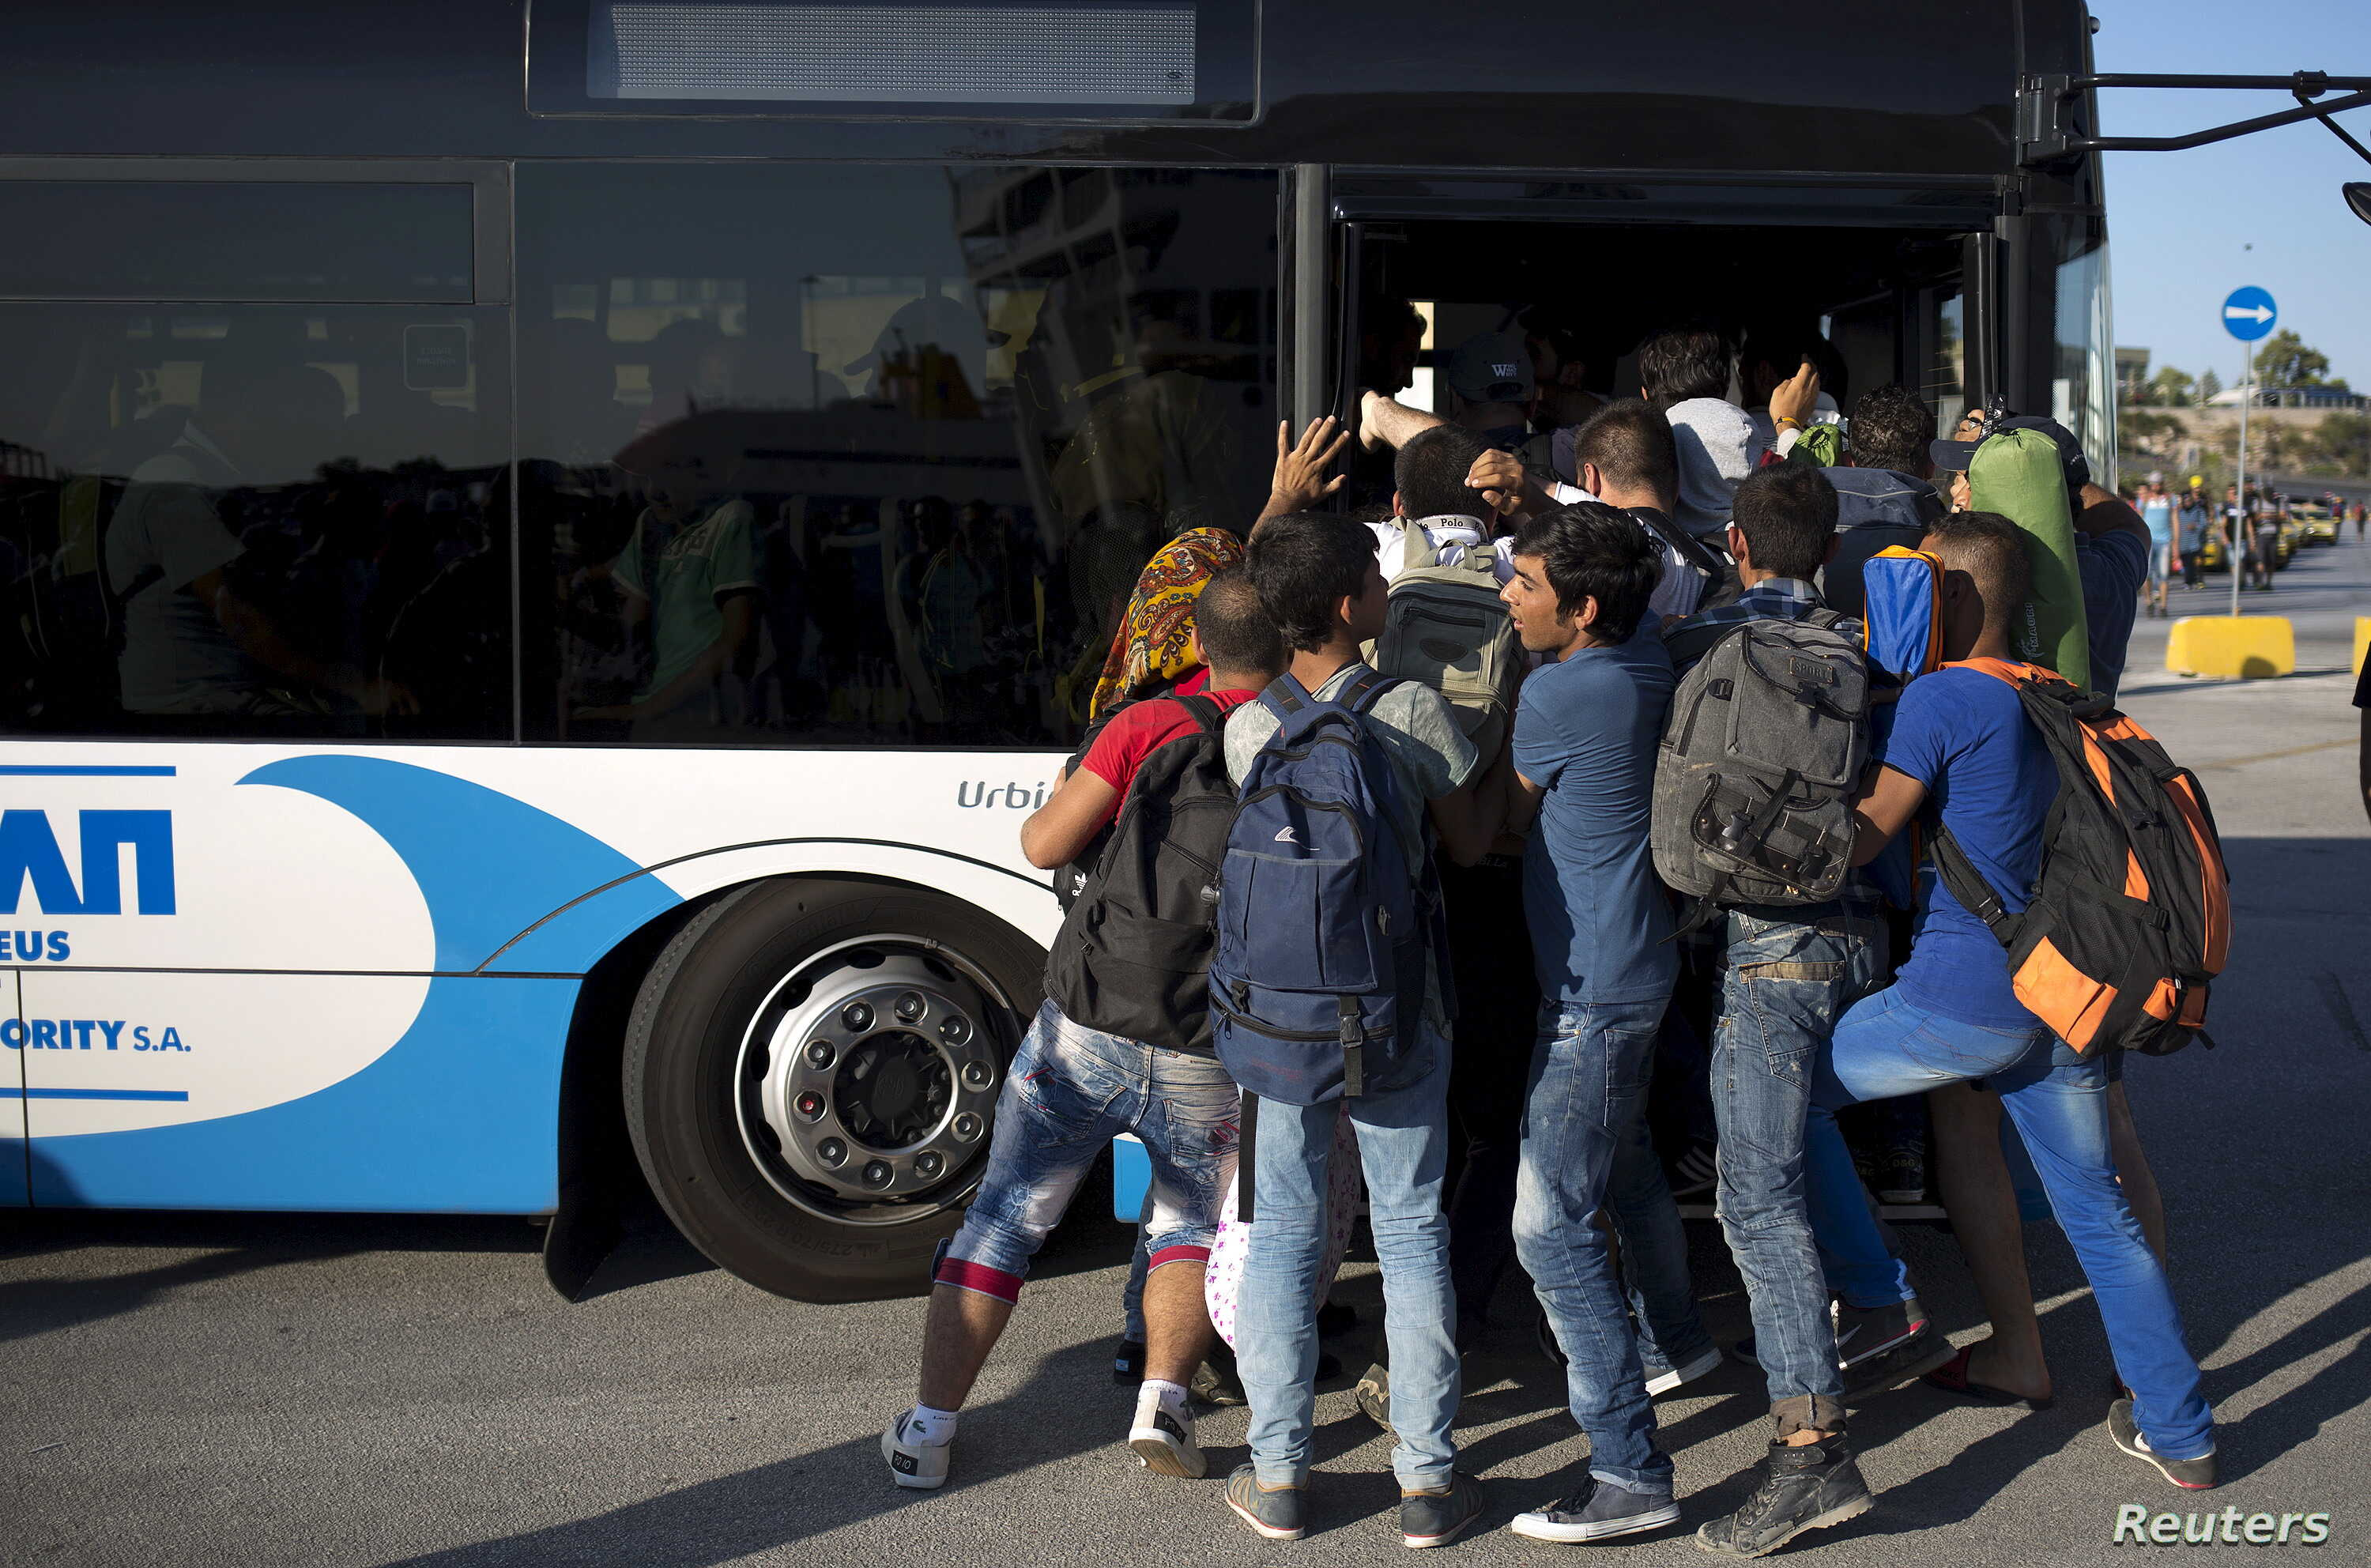 Migrants try to get on a bus following their arrival onboard the Eleftherios Venizelos passenger ship at the port of Piraeus near Athens, Greece, Aug. 29, 2015.